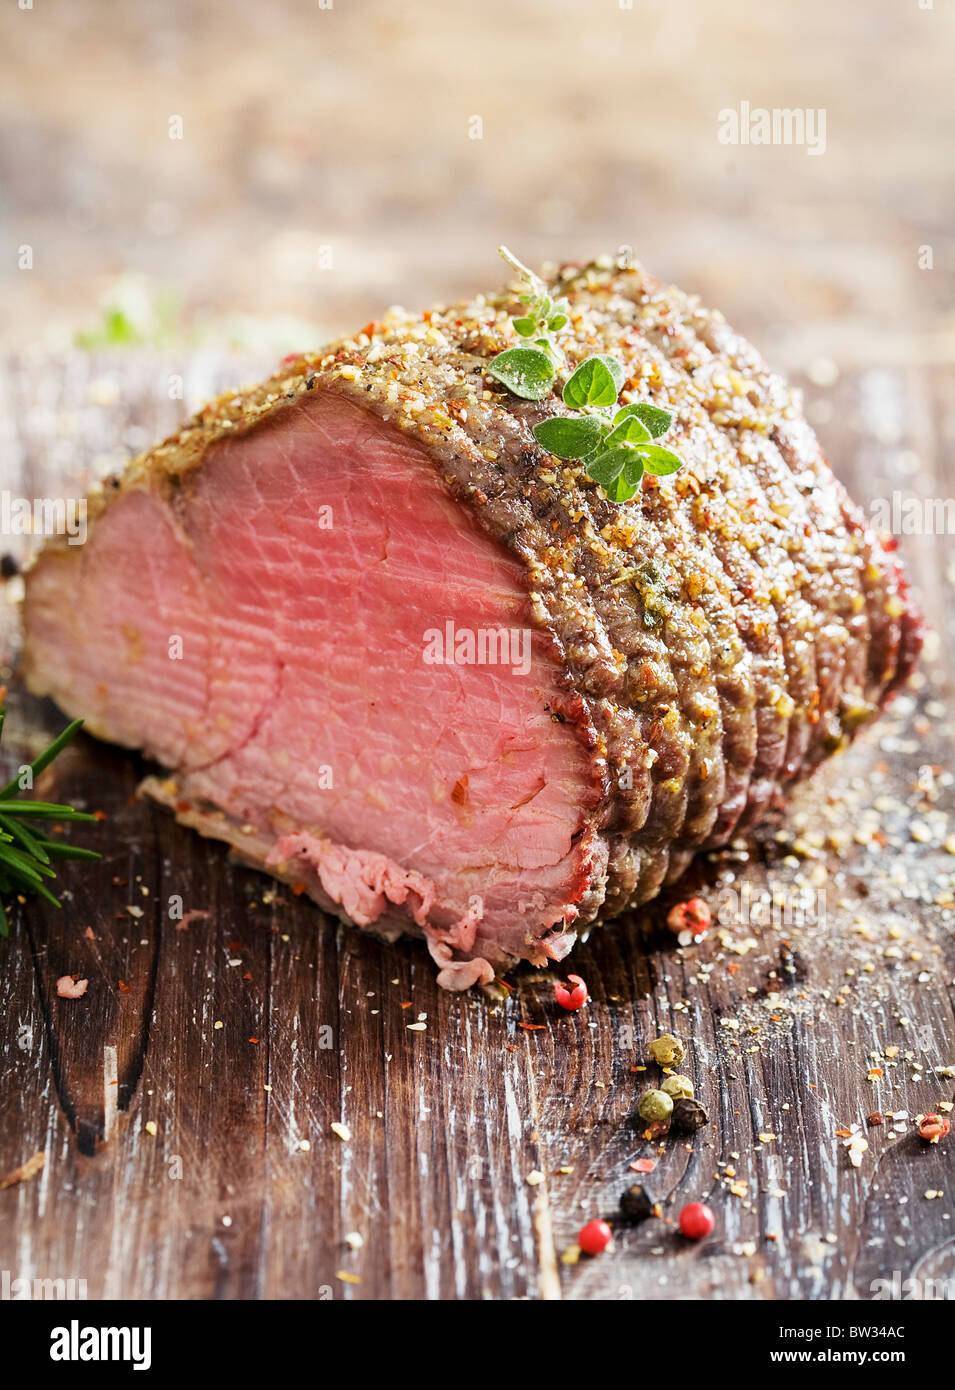 juicy roast beef covered in herbs - Stock Image